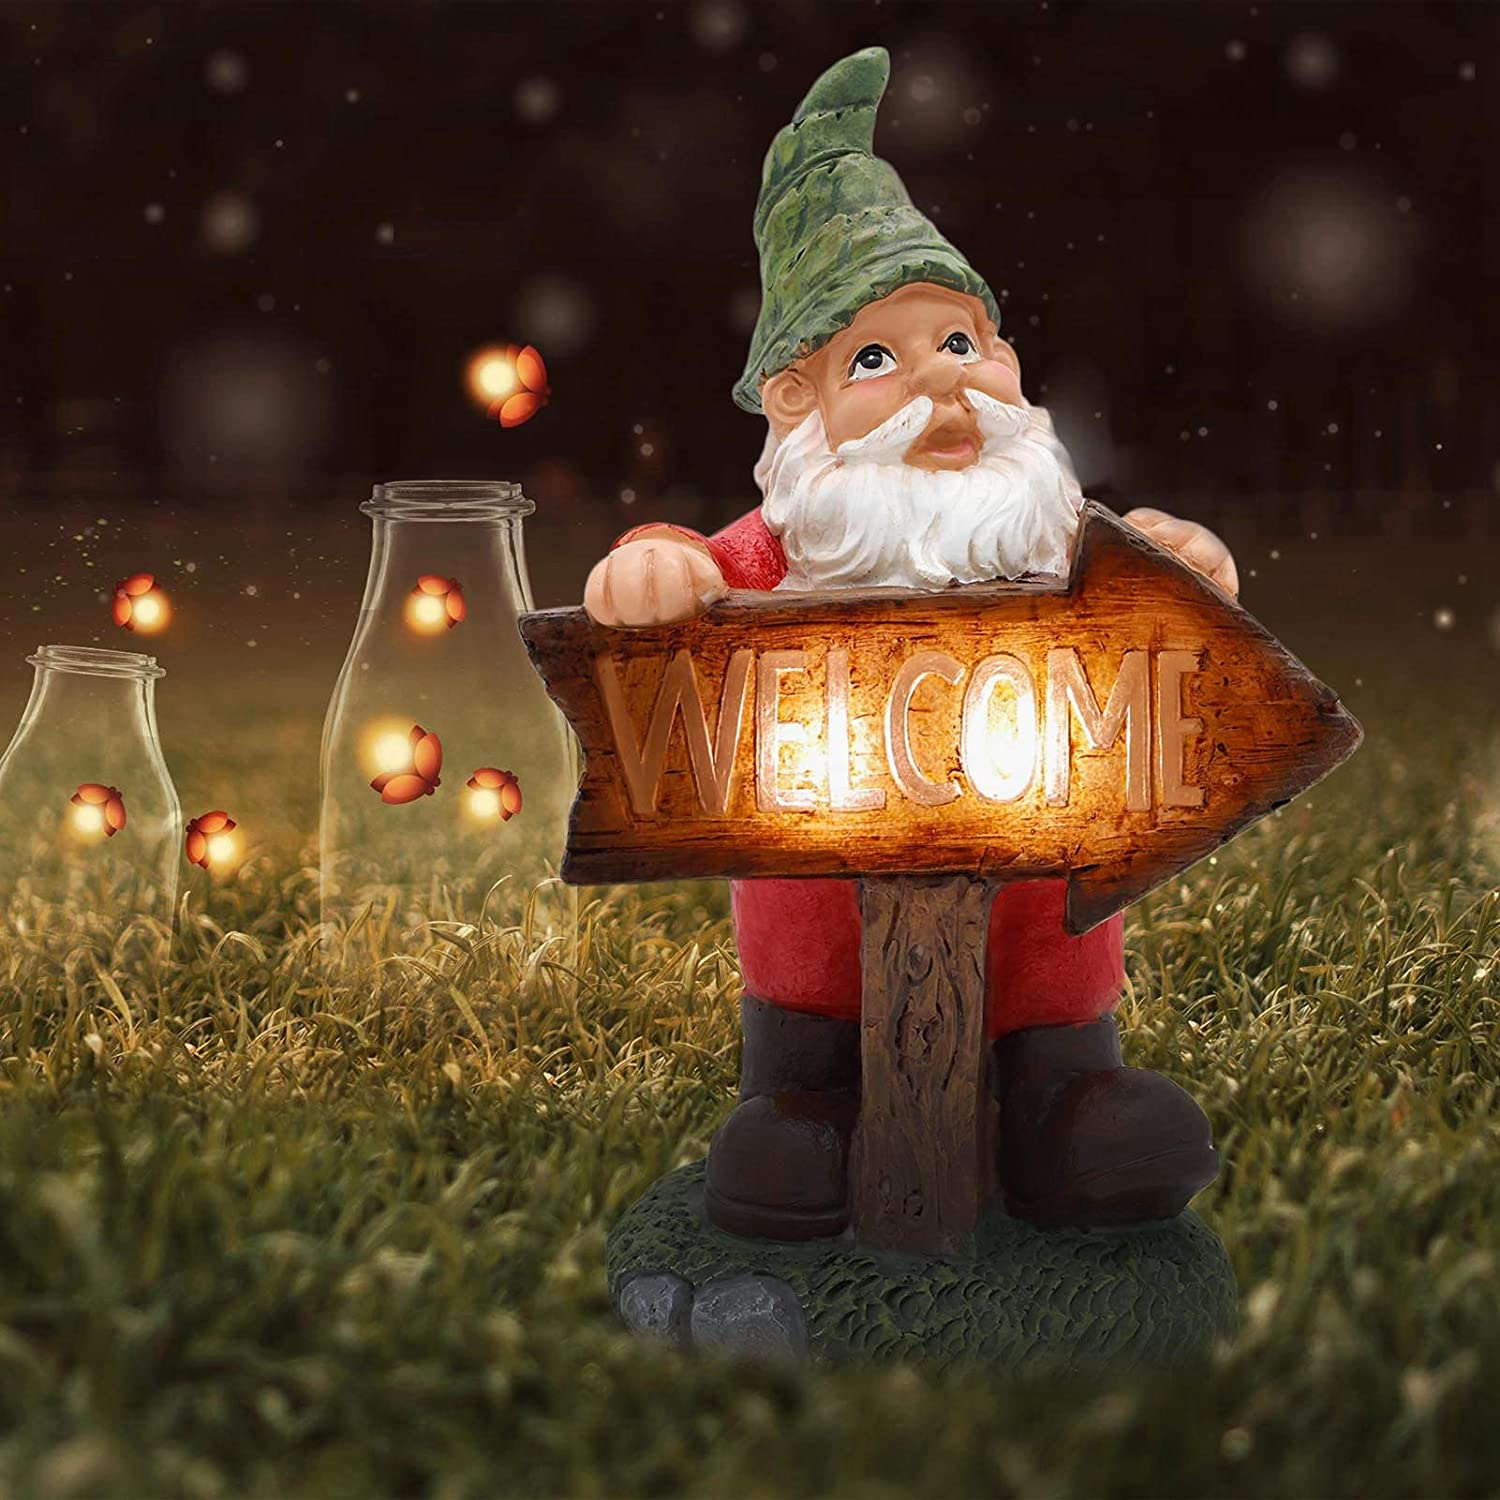 LUCKYBUNNY Funny Garden Gnome Statue with Solar LED Light, Waterproof Welcome Elf Tomte Gnomes Figurine Outdoor Sculpture for Patio, Yard, Lawn Porch Decoration